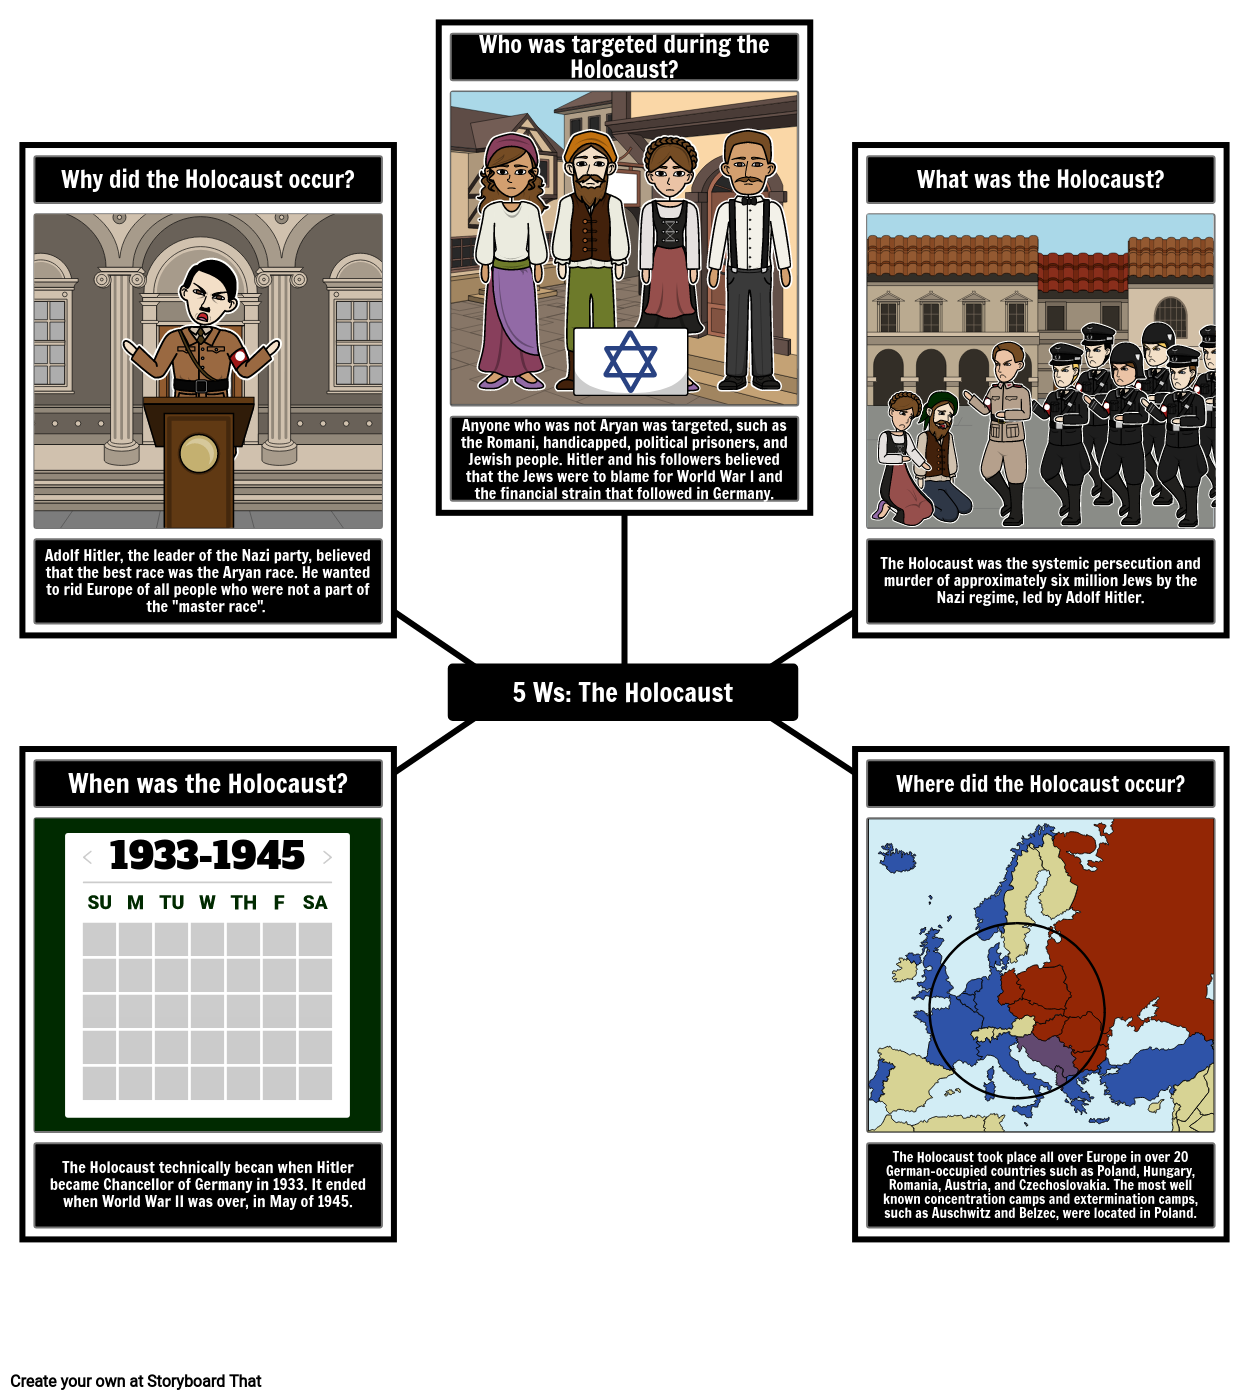 5 Ws of the Holocaust